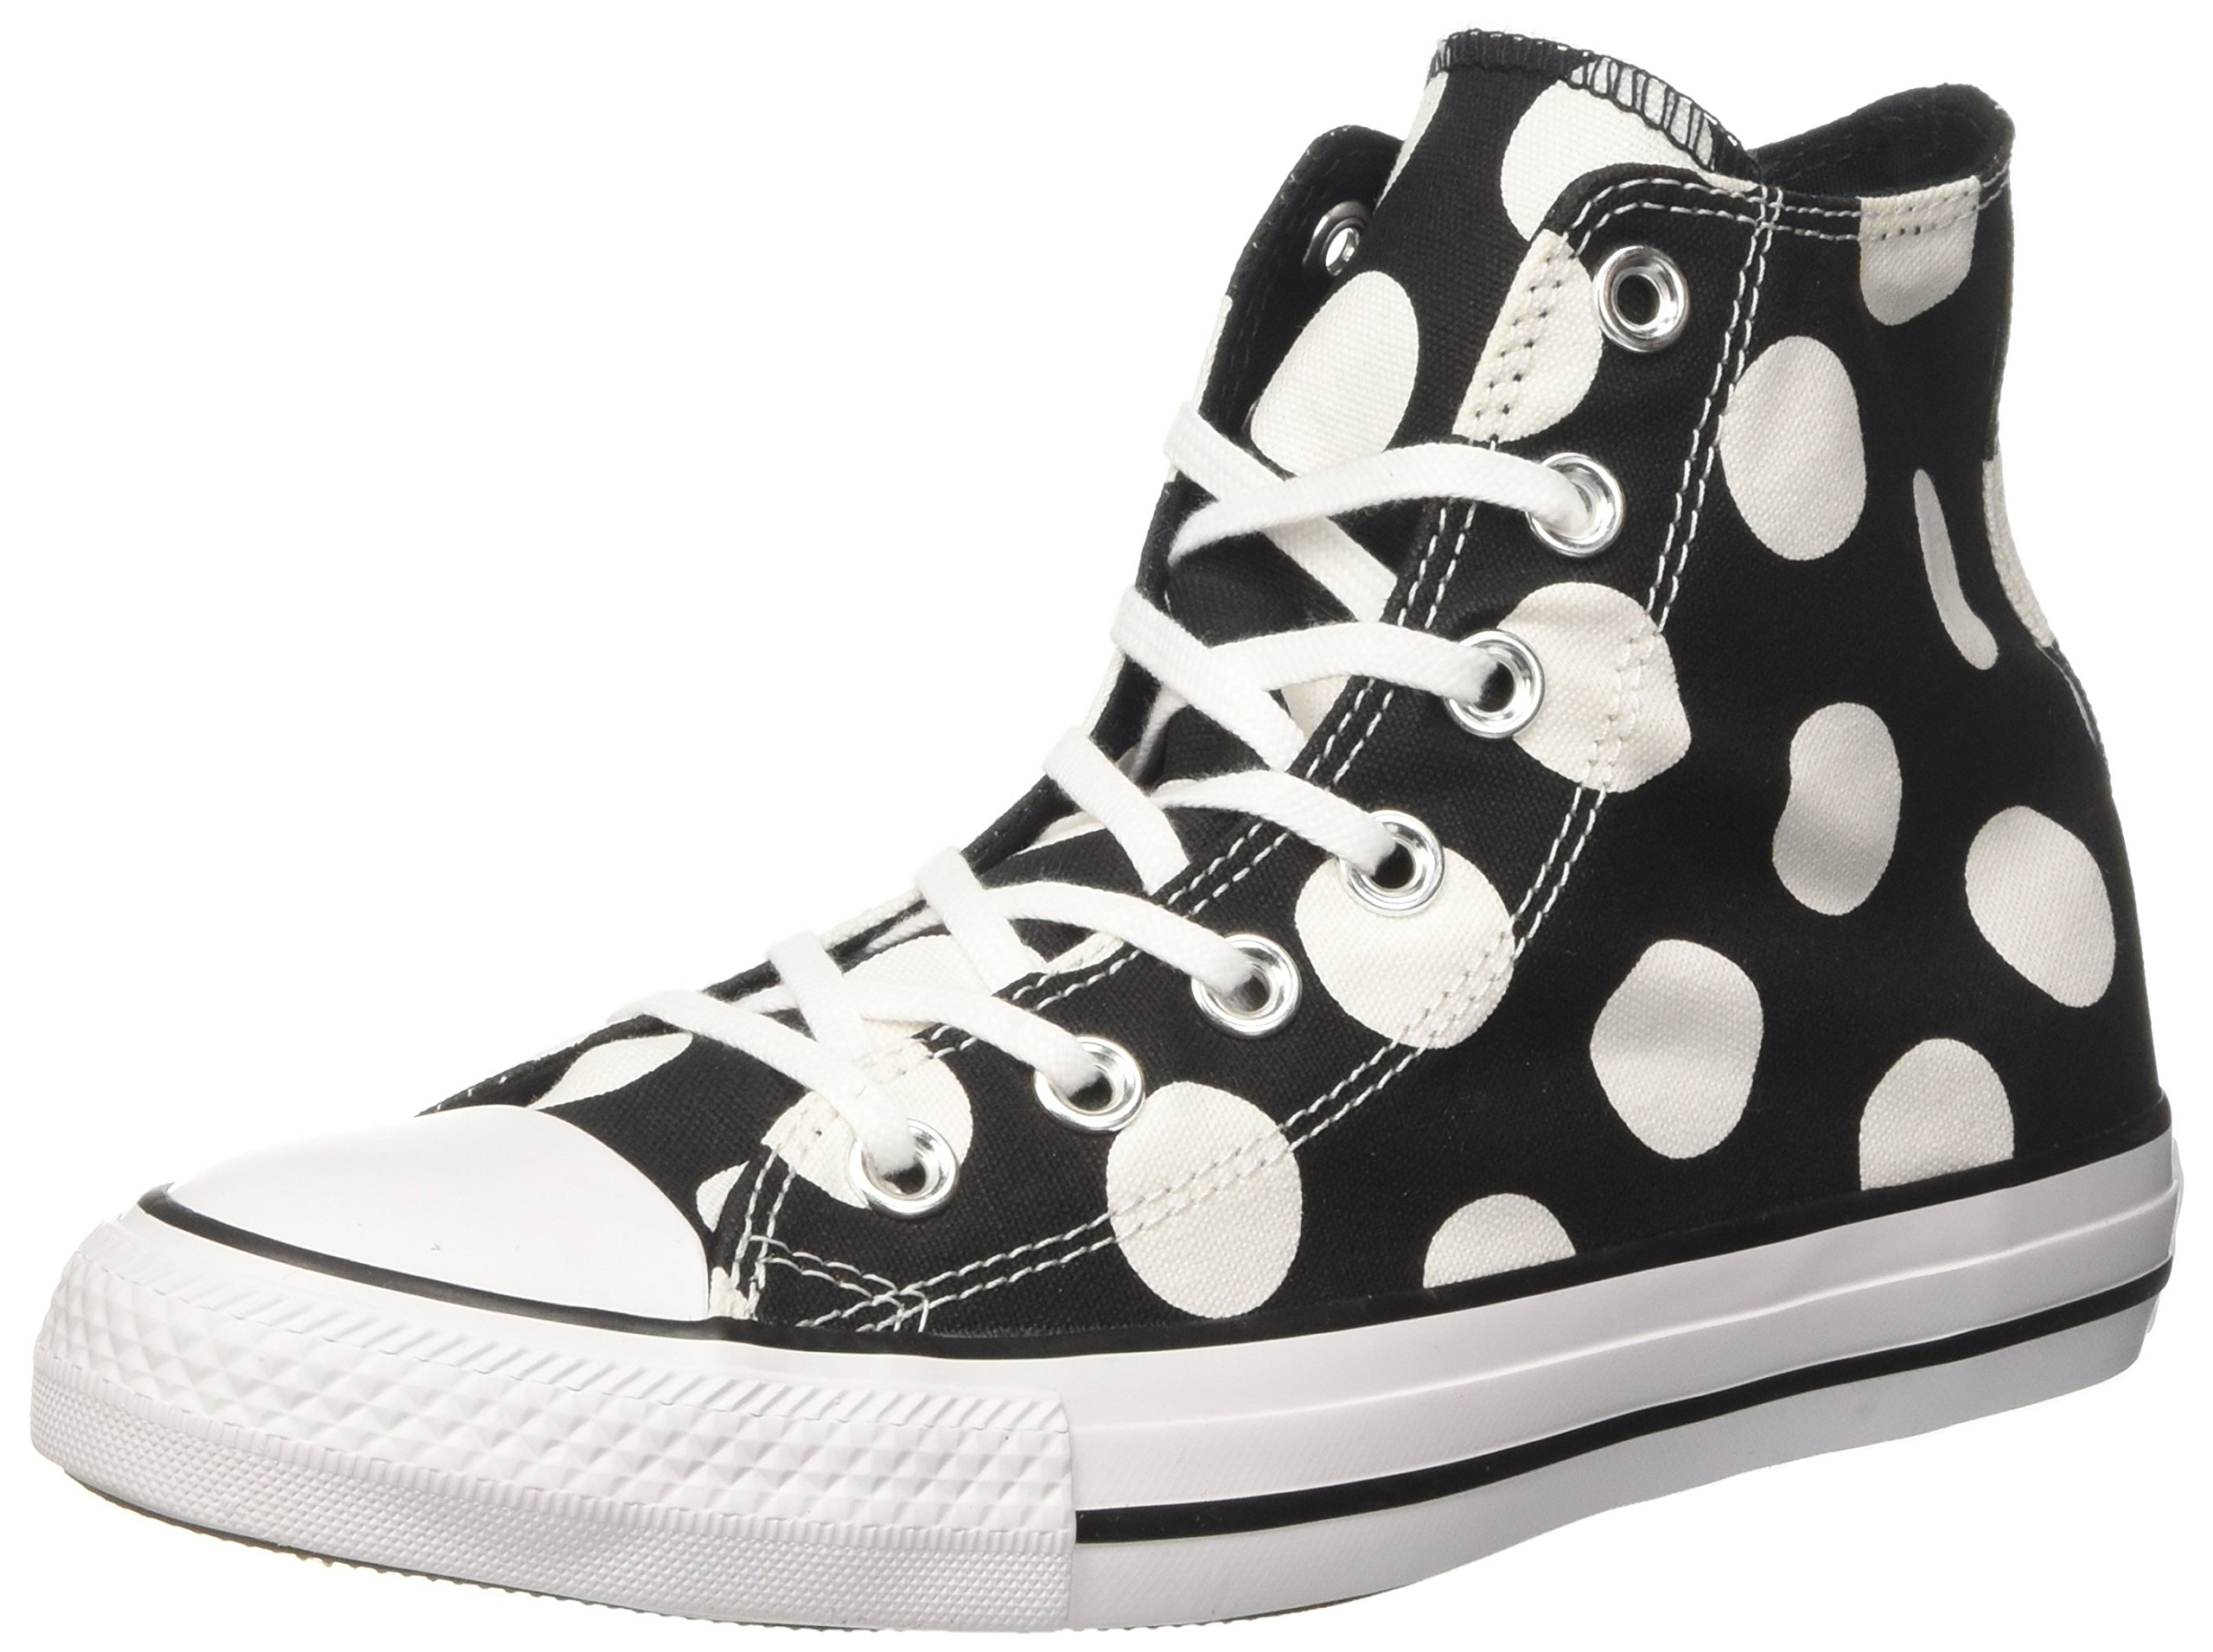 Converse Converse 556814cSneakers 556814cSneakers FemmeNoirblack Eu White37 Eu Converse White37 FemmeNoirblack odxBeC